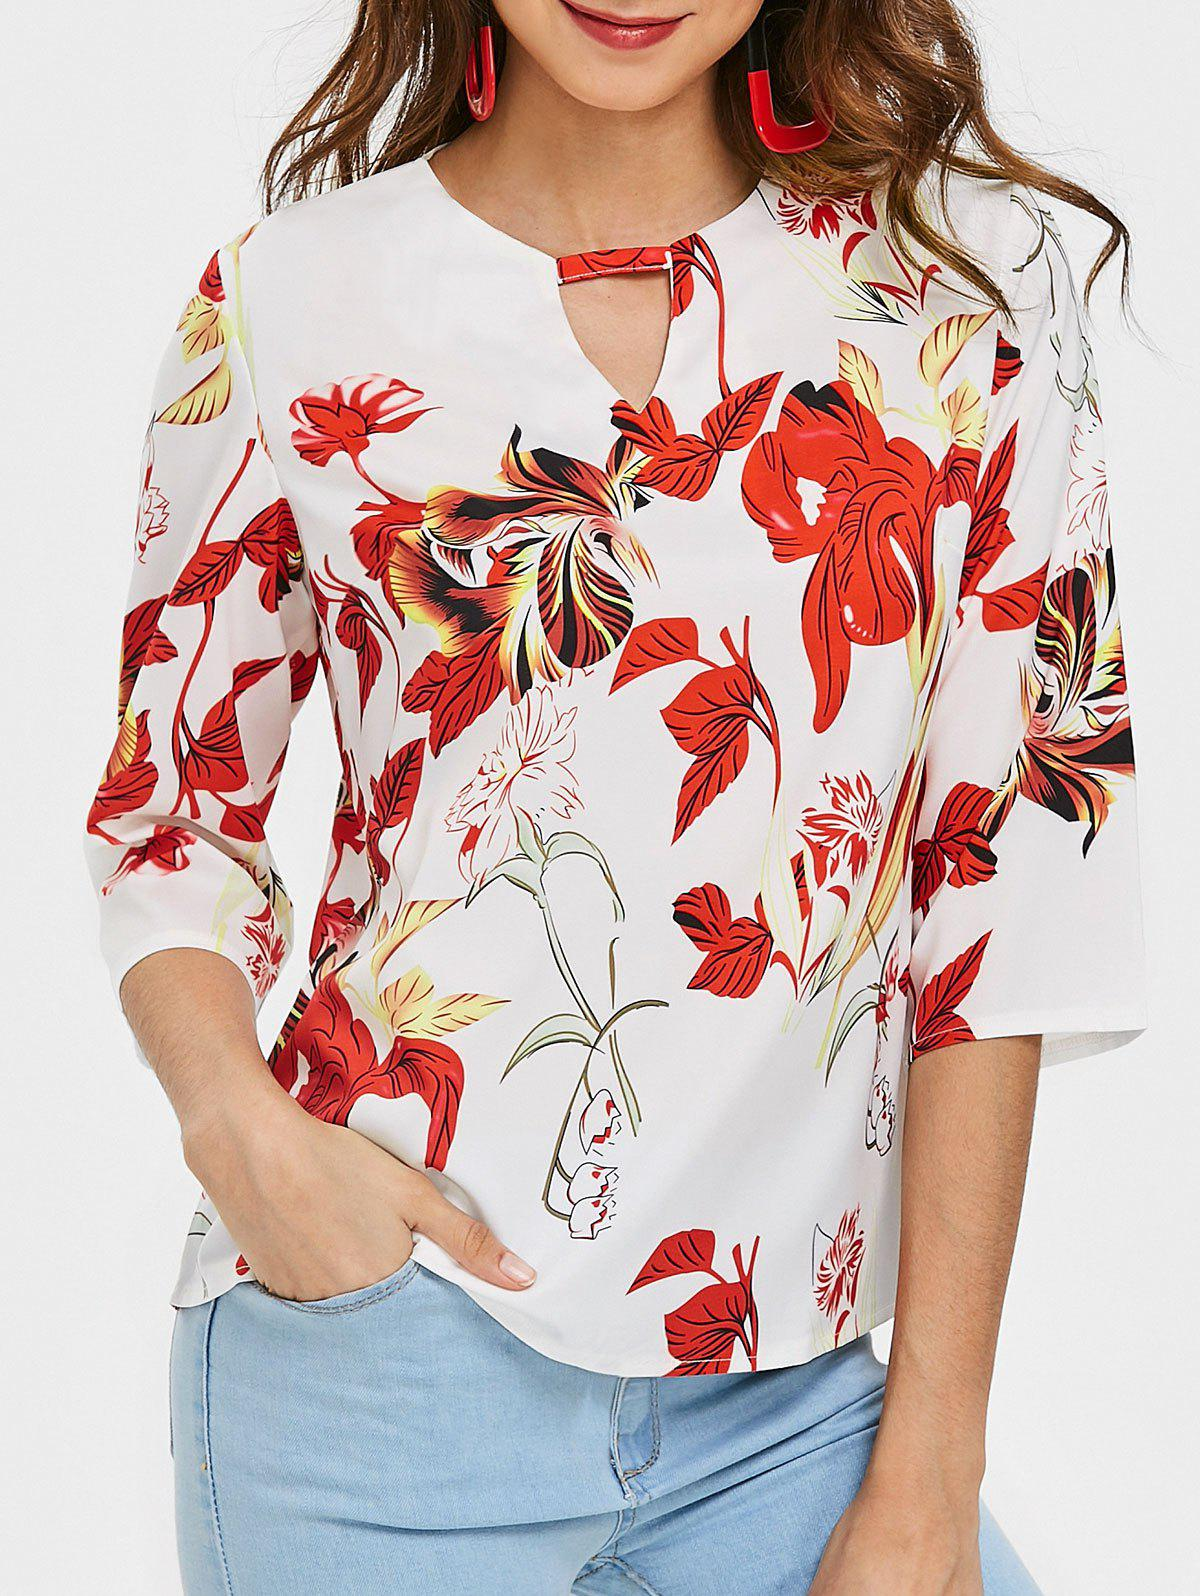 V Cut Out Floral Print Blouse - COLORMIX M